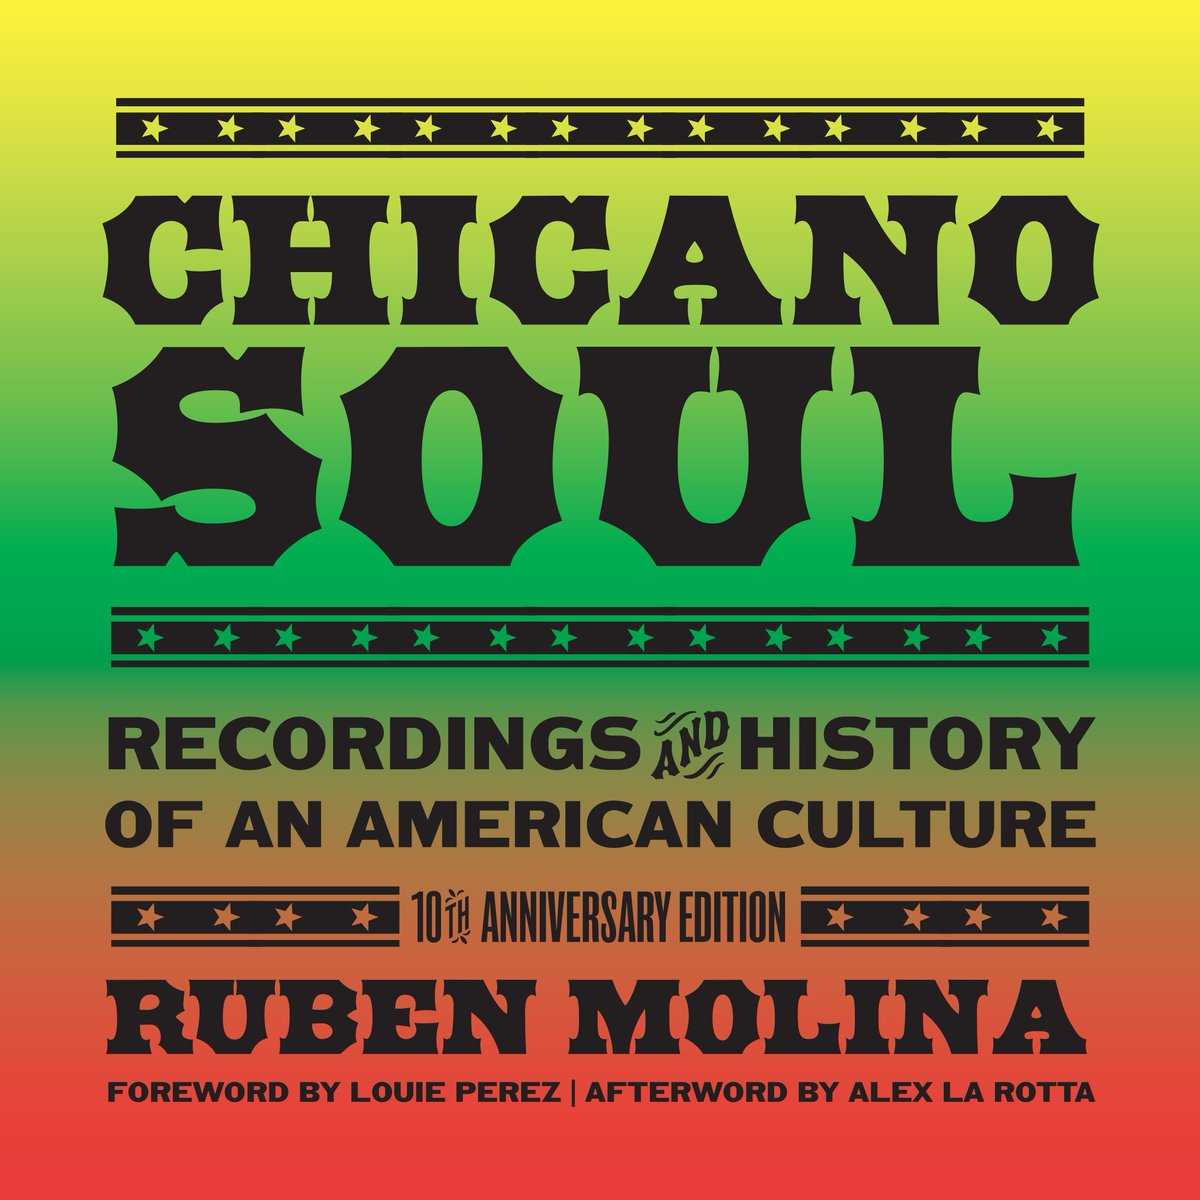 &quot;This book will make a valuable addition to any music lover's collection.&quot; -- Forgotten Winds blog&#39;s #BookReview of CHICANO SOUL by #RubenMolina. LAST DAY of the #LoneStarLit Tour w/@TTUPress @Soulstax @ScholarStephens Read up &amp; buy copies for the #musiclovers in your life! <br>http://pic.twitter.com/0AvDaLkOJ3